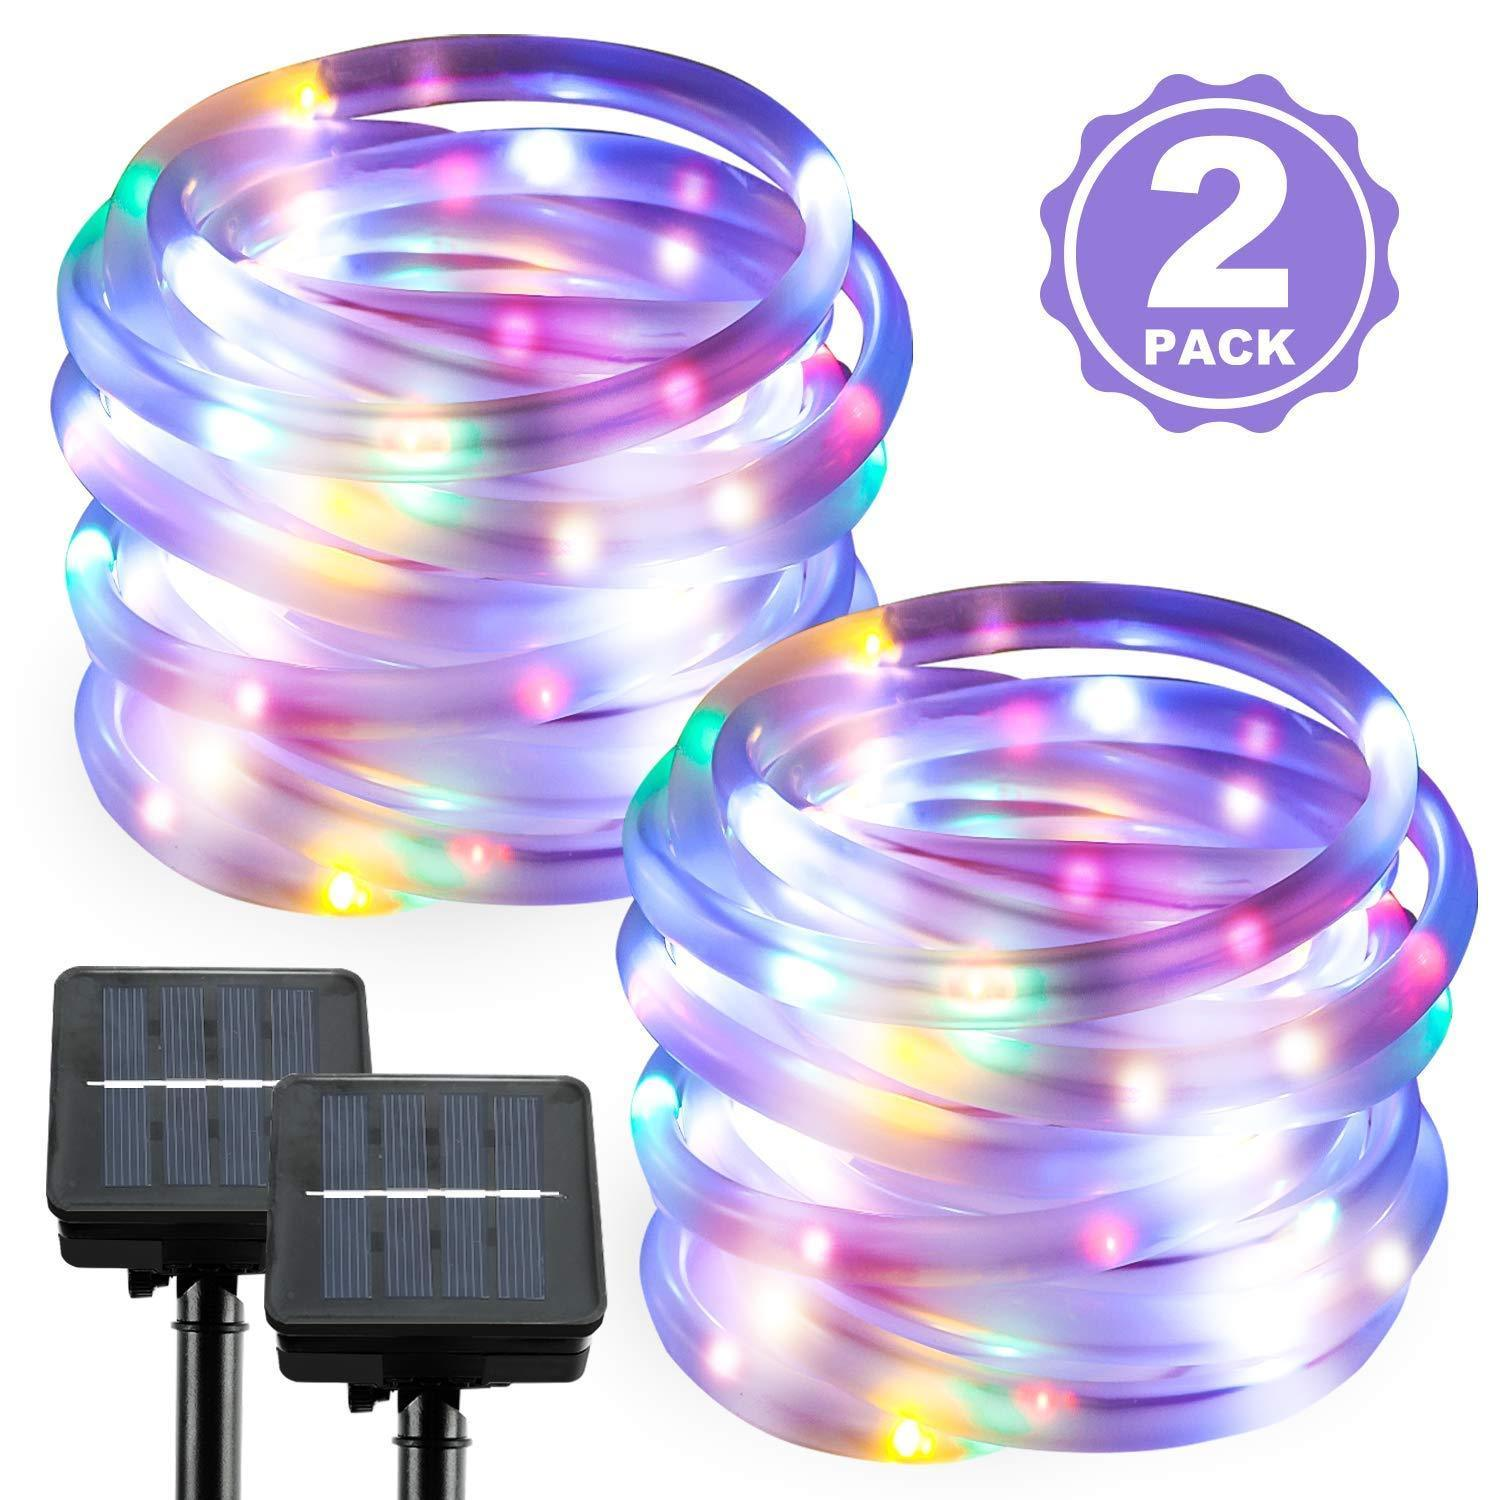 Details About 39ft 100 Leds Solar Ed Waterproof Outdoor Led Rope Lights Xmas Garden Lamp